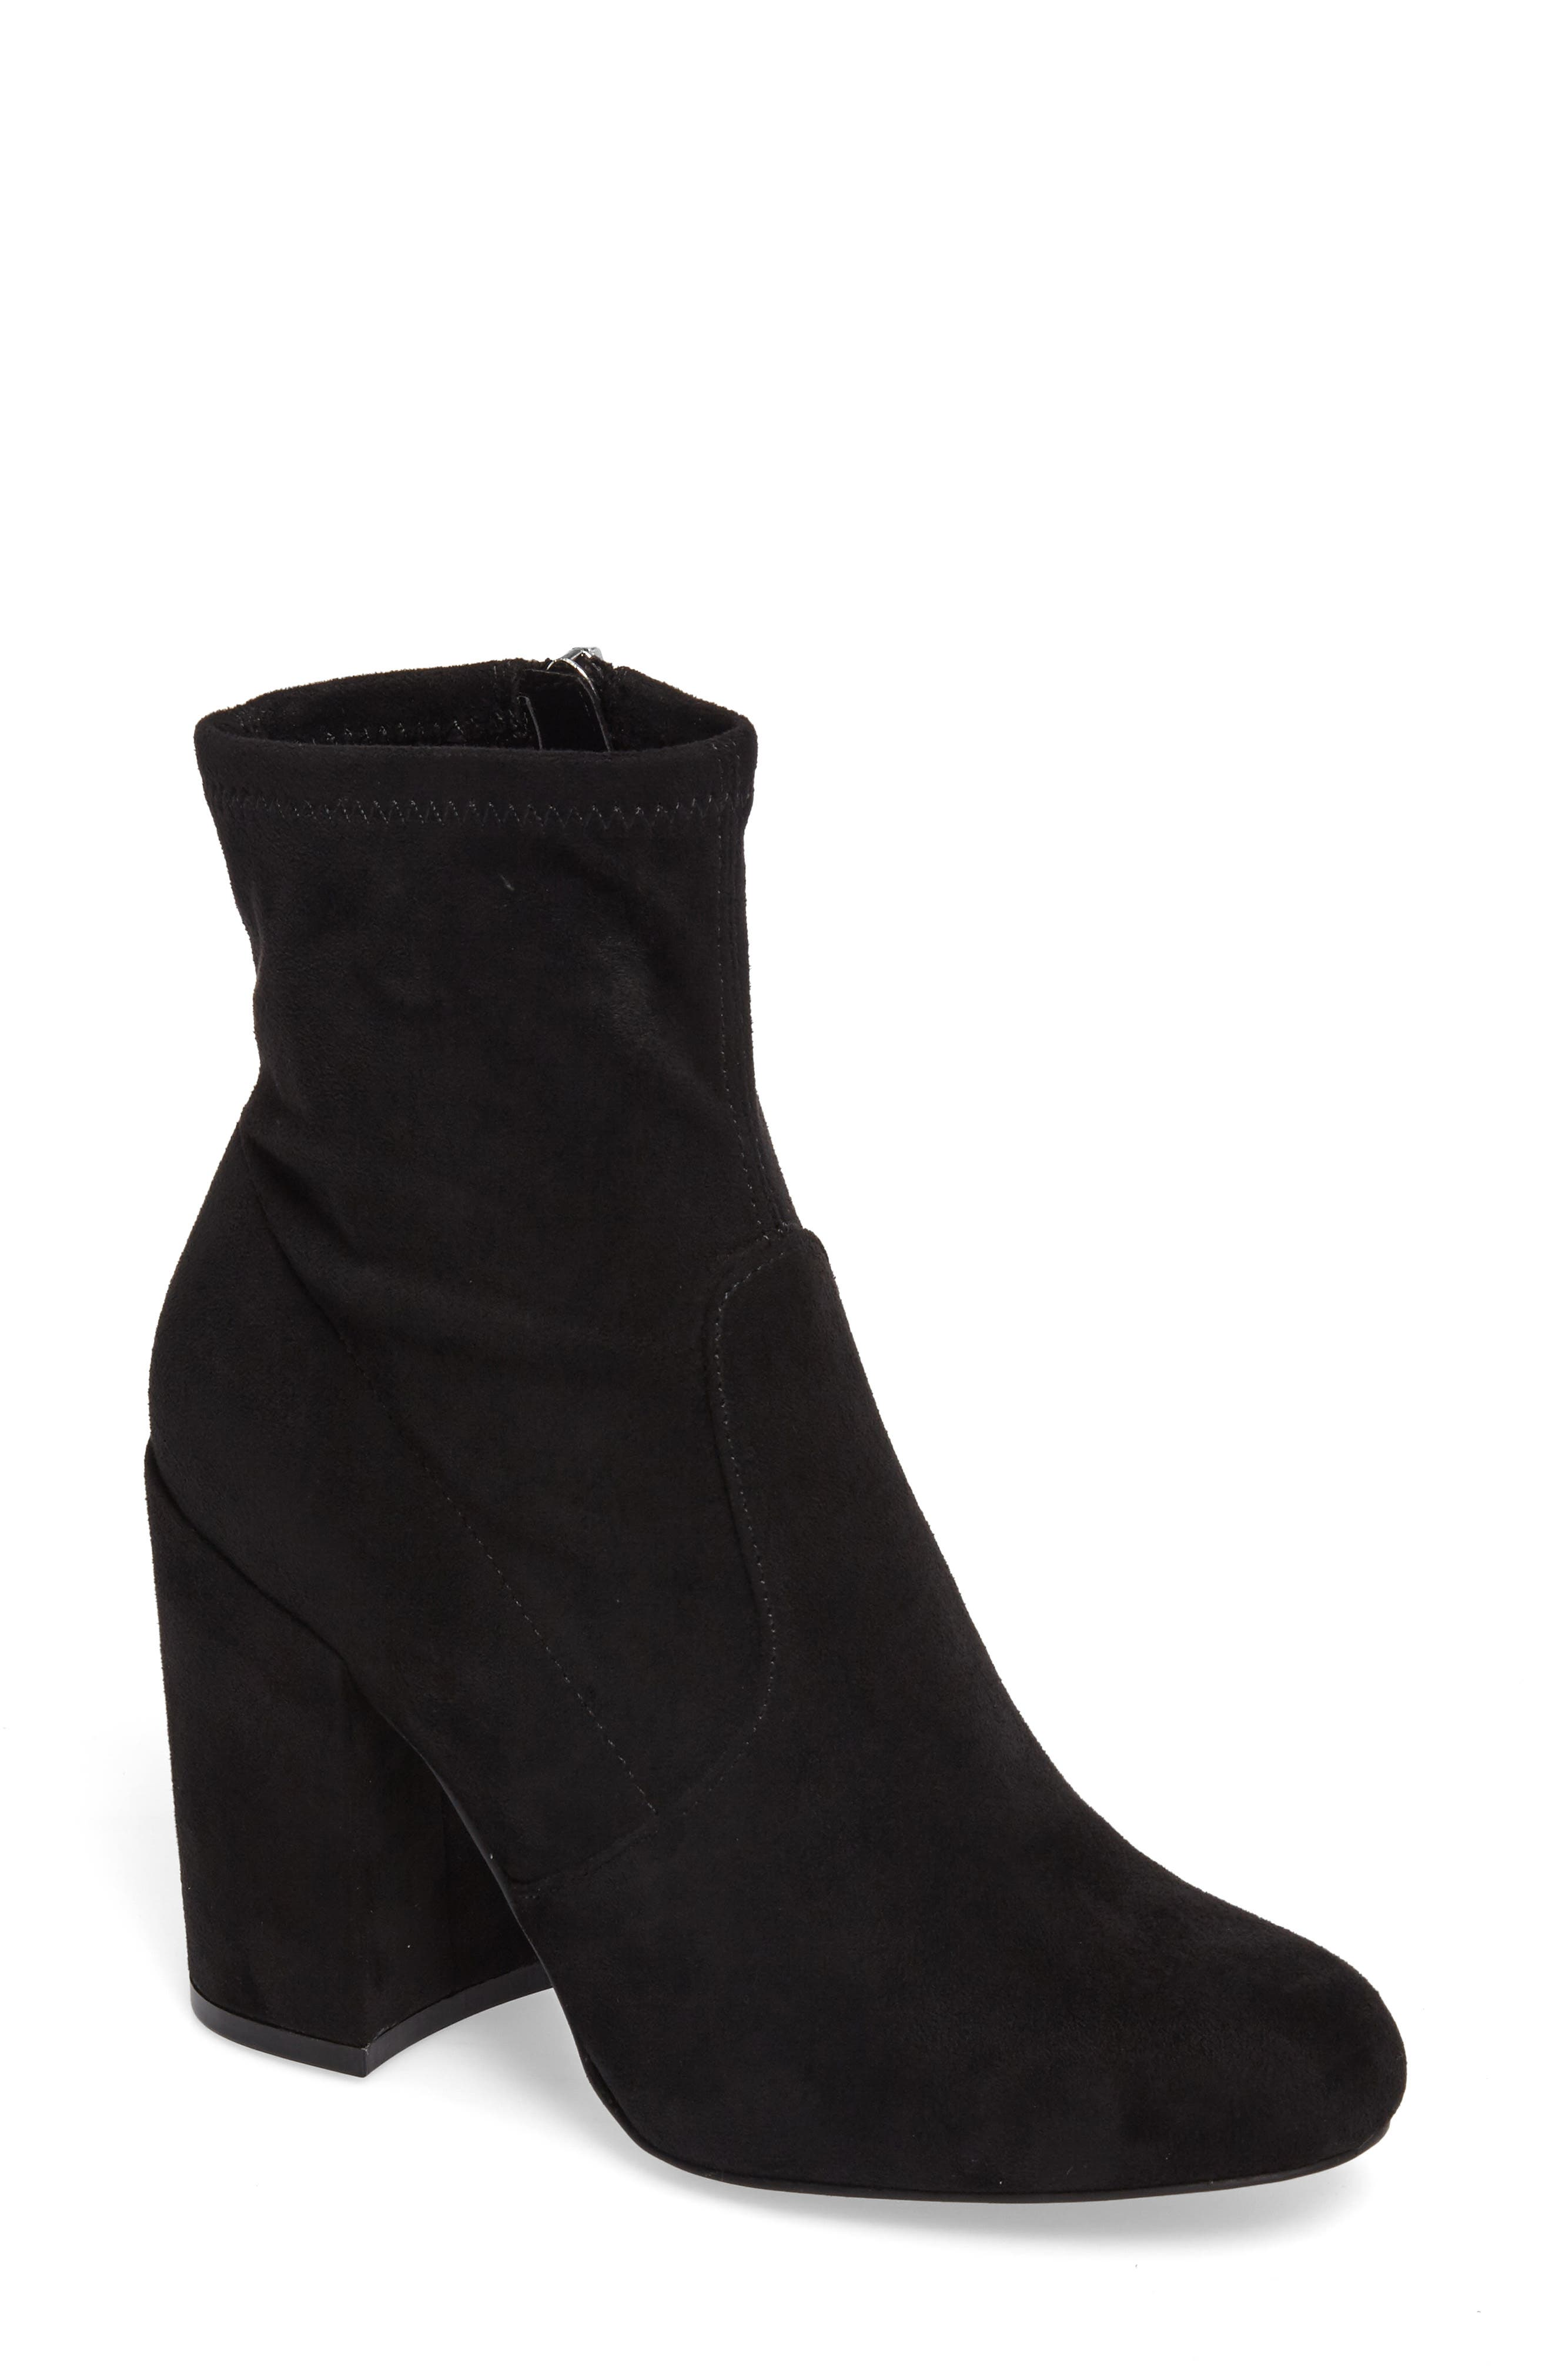 Gaze Bootie,                         Main,                         color, Black Suede